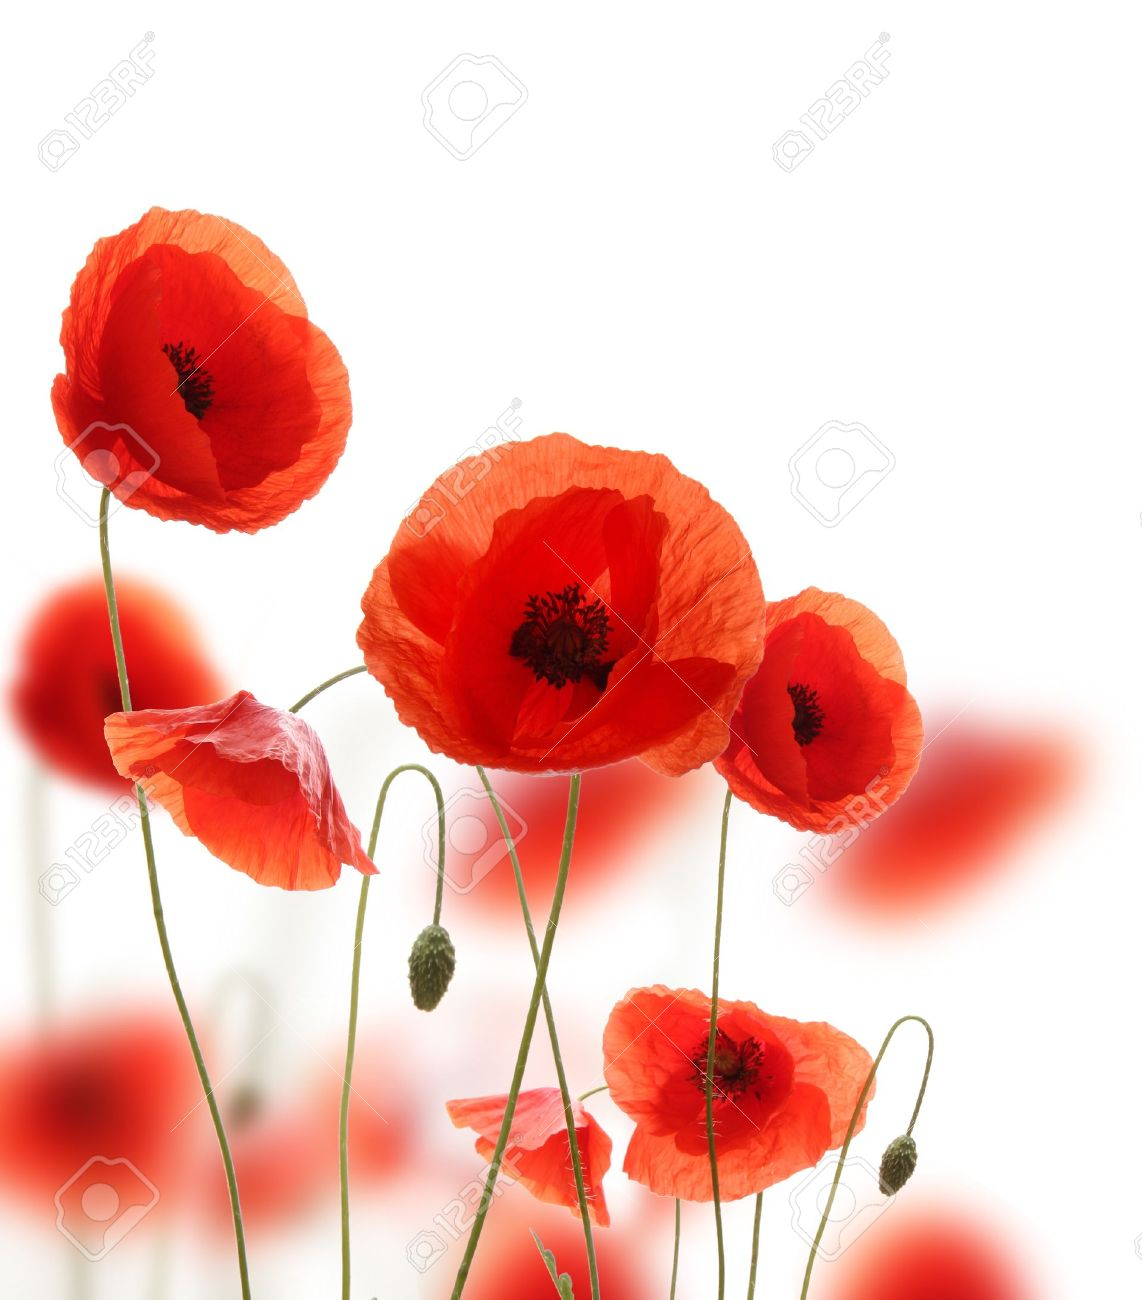 Red Poppy Stock Photos Royalty Free Red Poppy Images